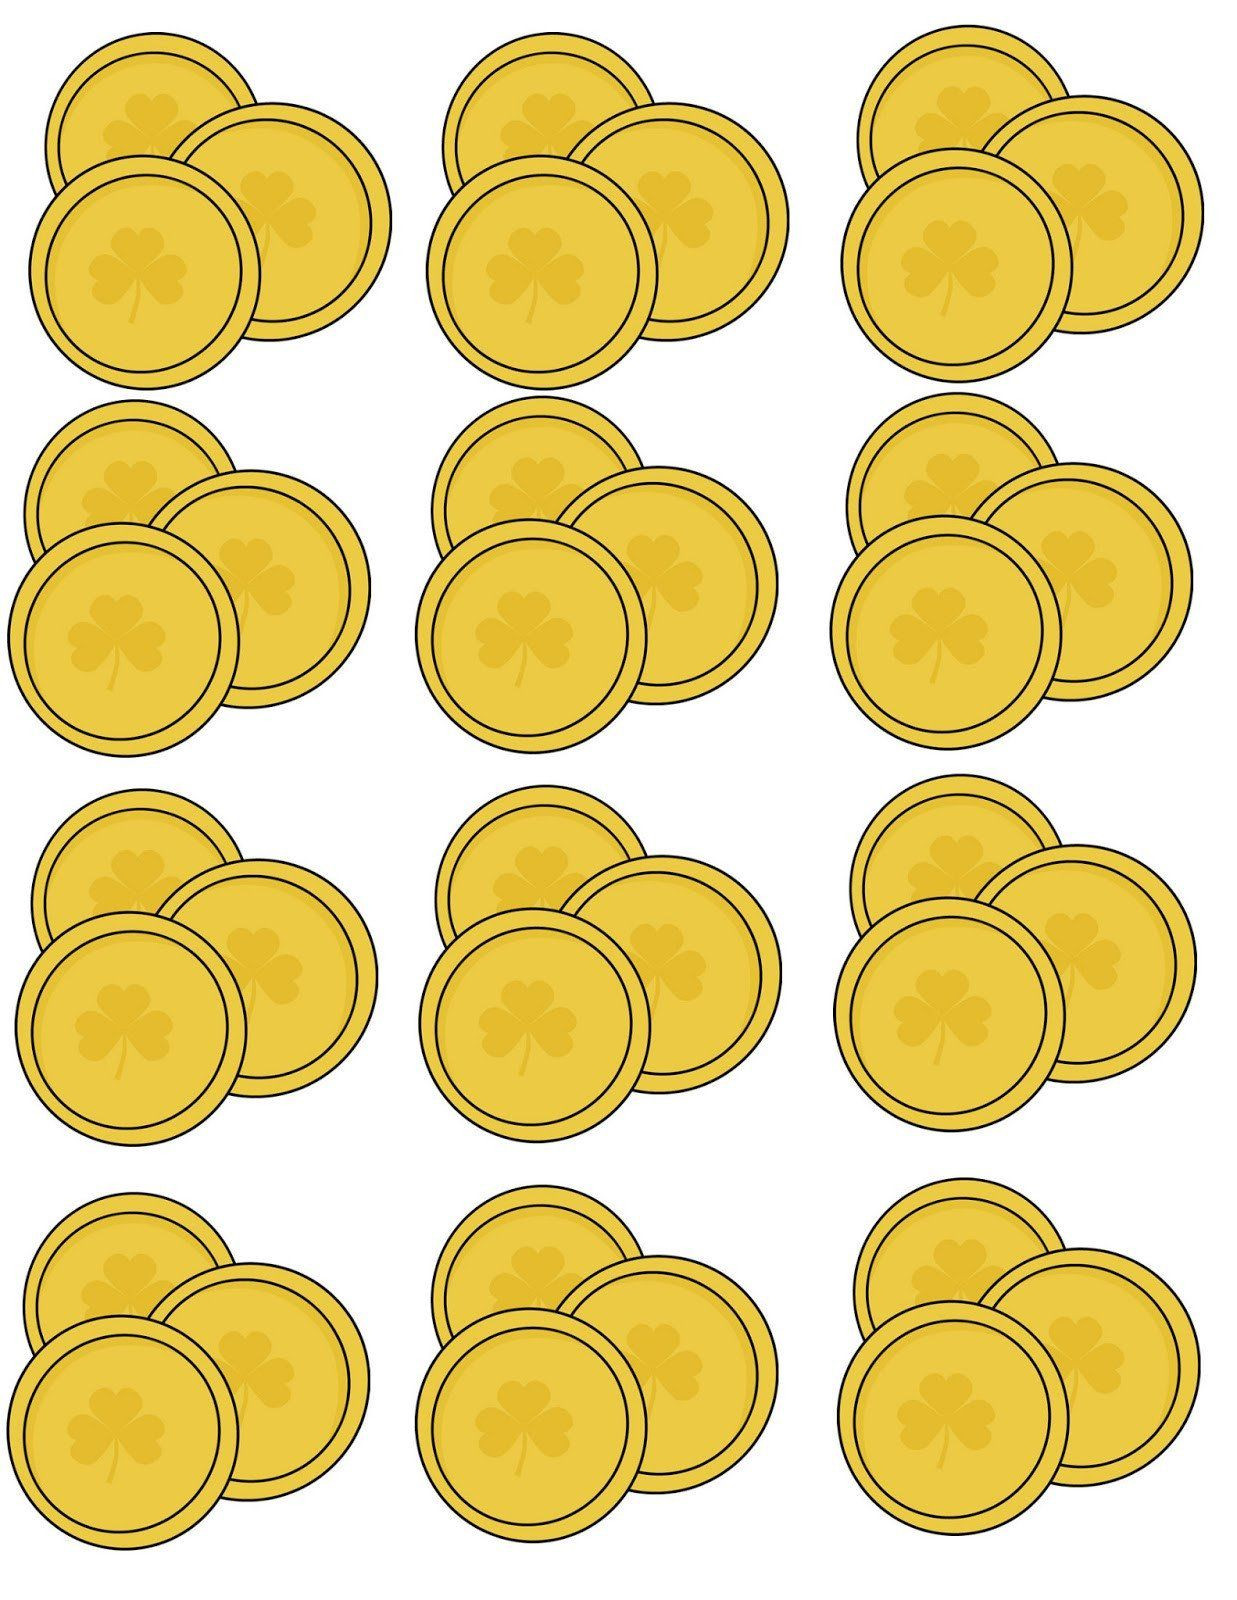 30 Gold Coin Template Printable in 2020